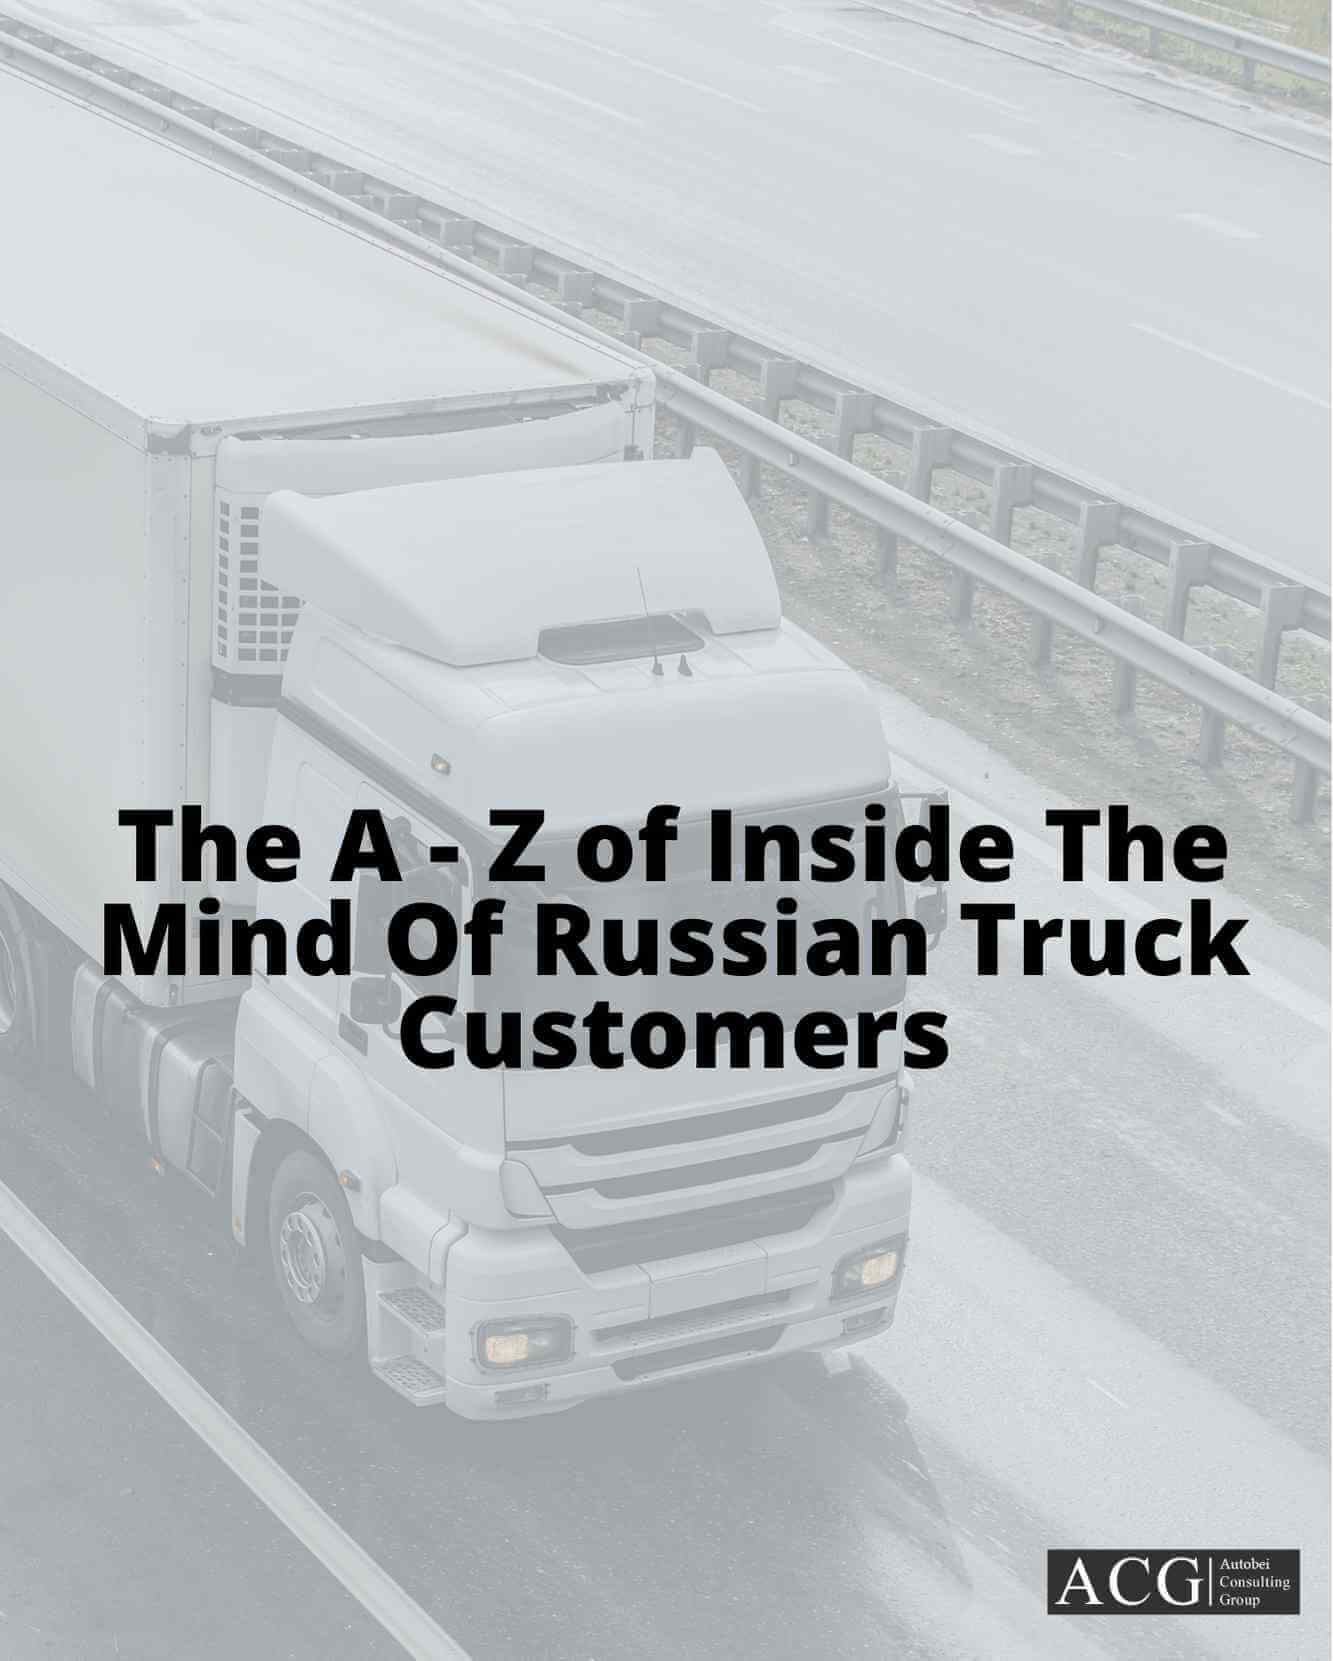 The A - Z of Inside The Mind Of Russian Truck Customers